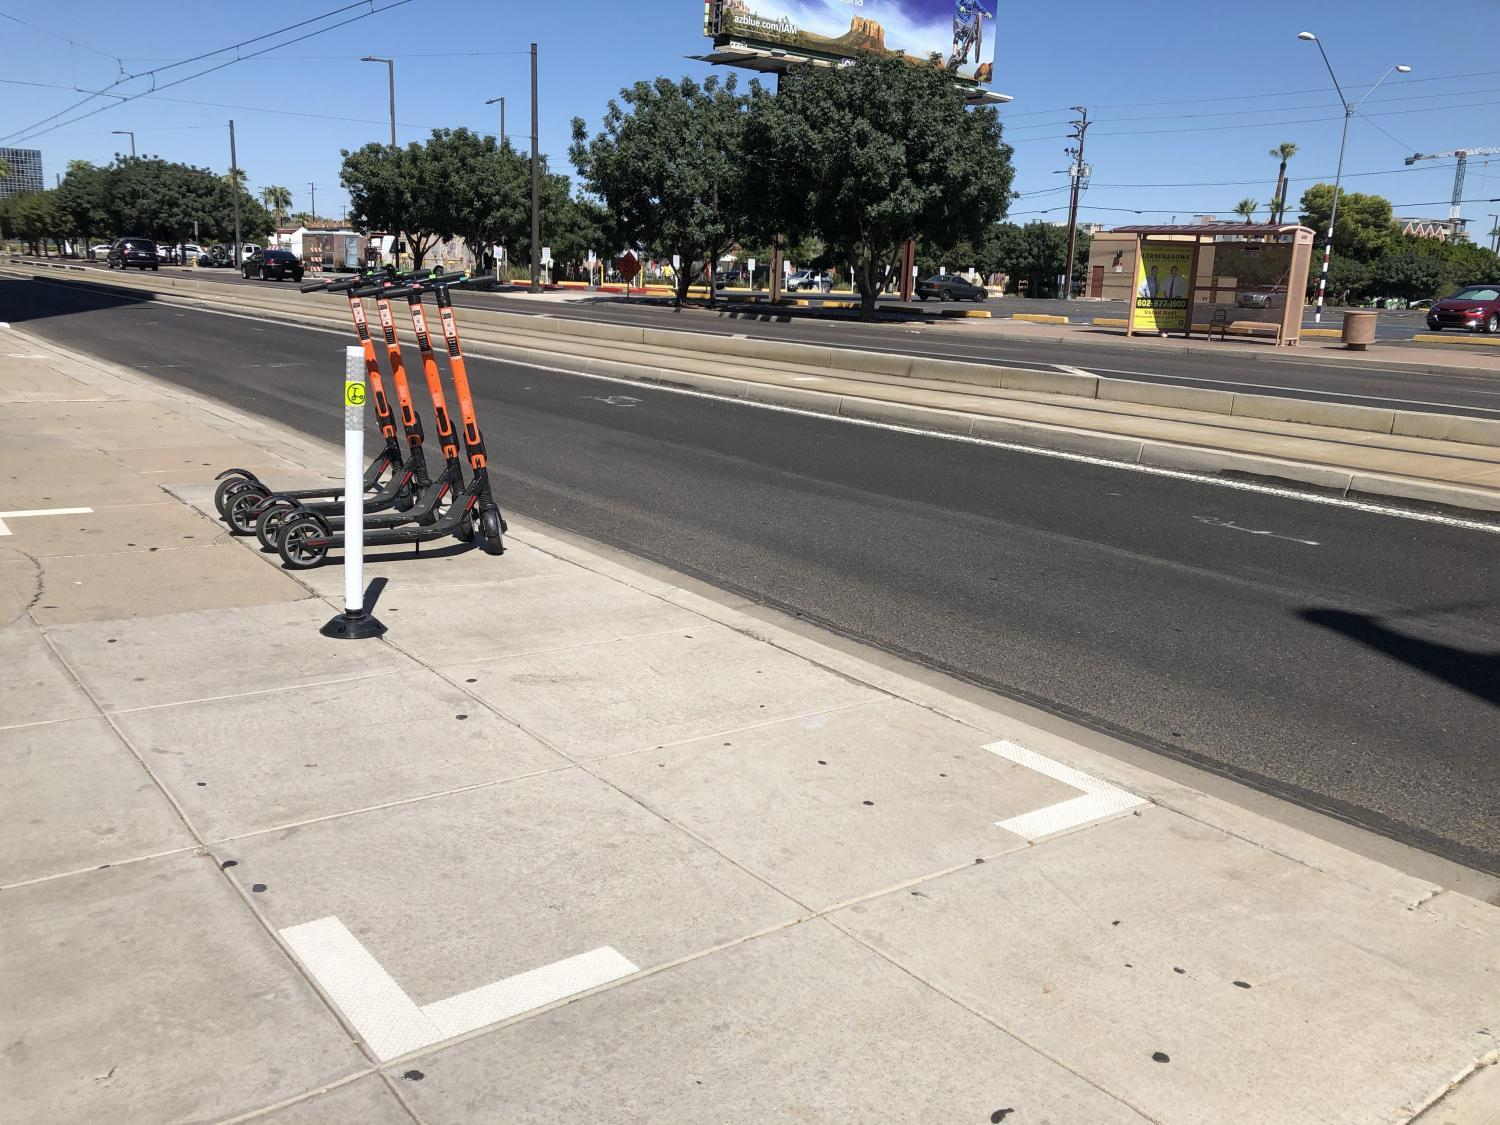 One of 400 e-scooter corrals in downtown Phoenix.